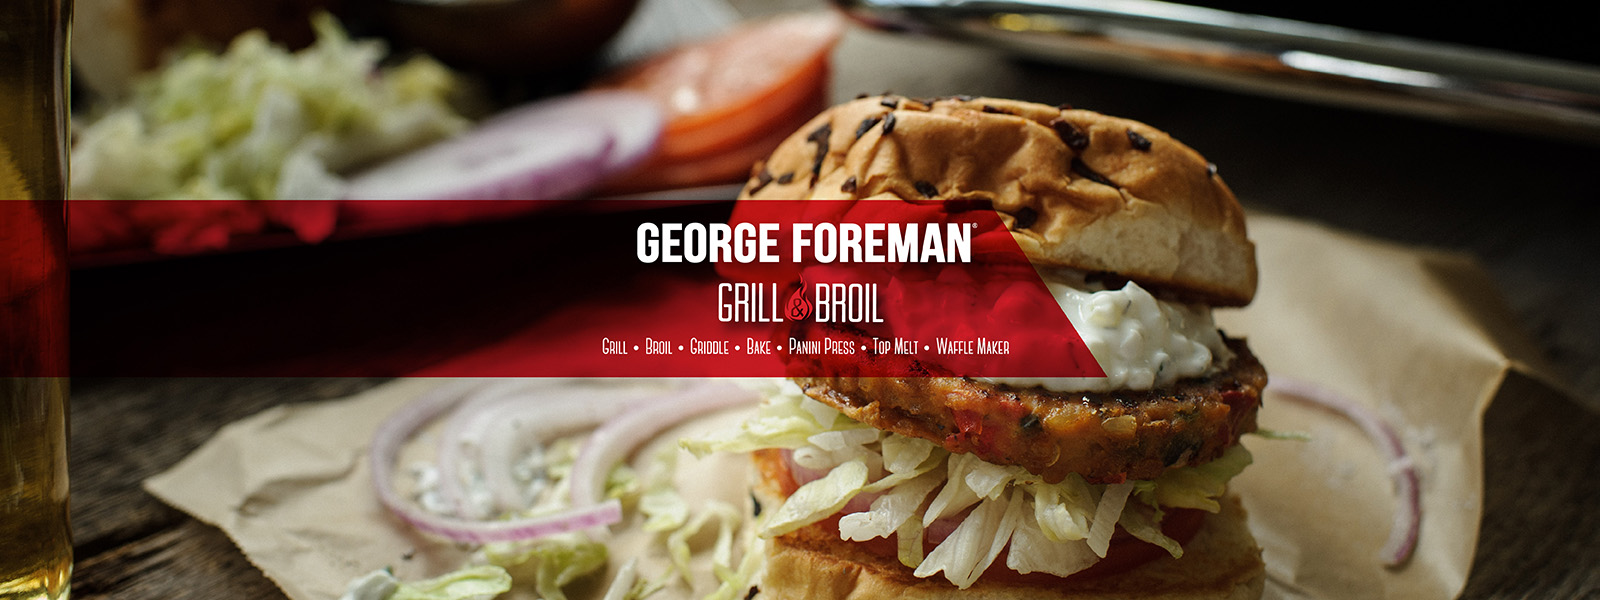 George Foreman Grill and Broil